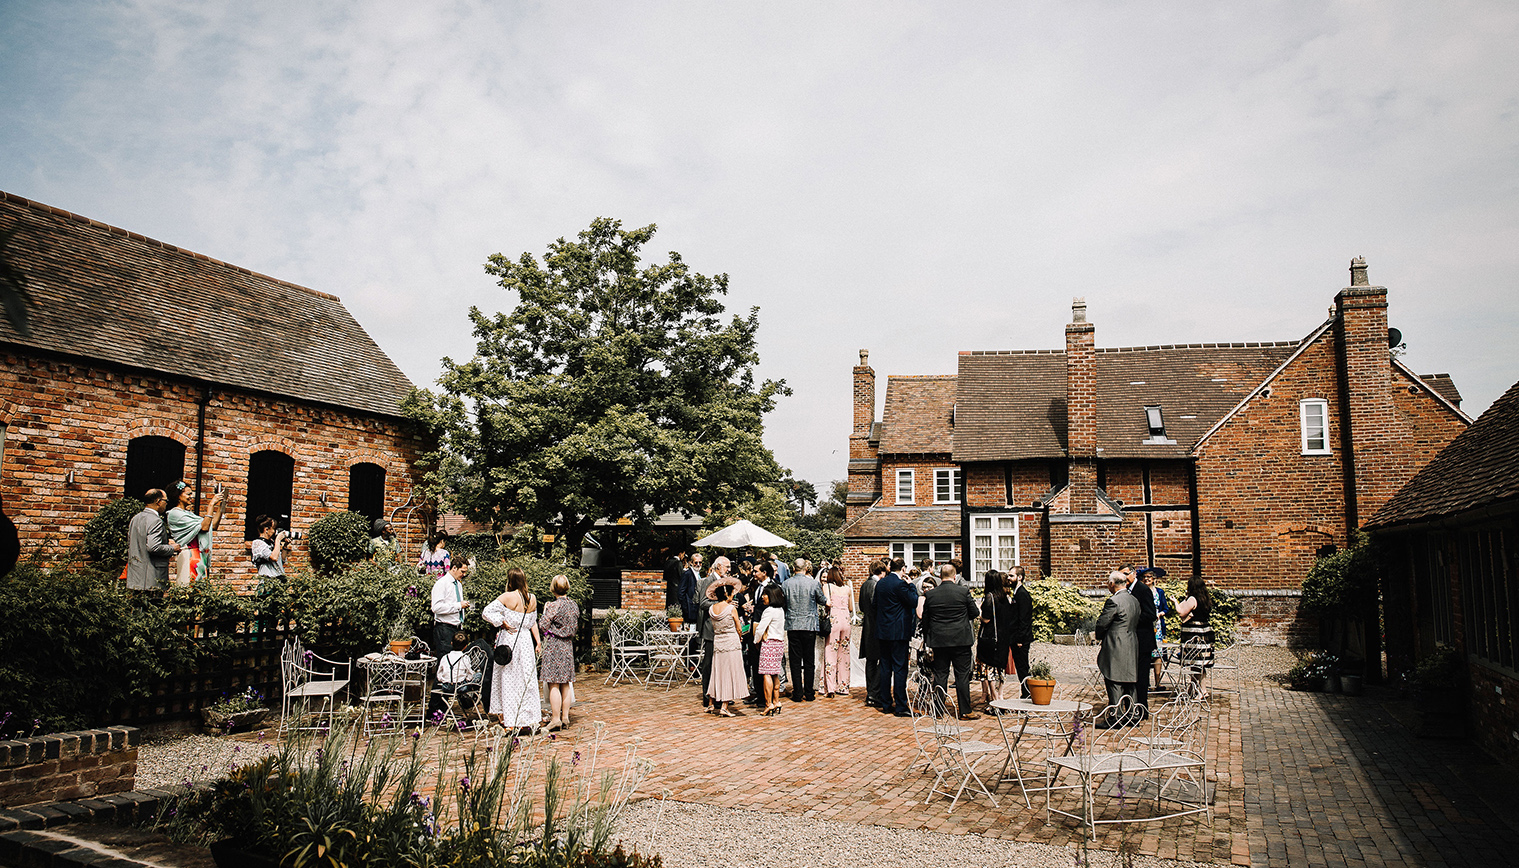 Curradine Barns in Worcestershire is the perfect place to host an outdoor wedding